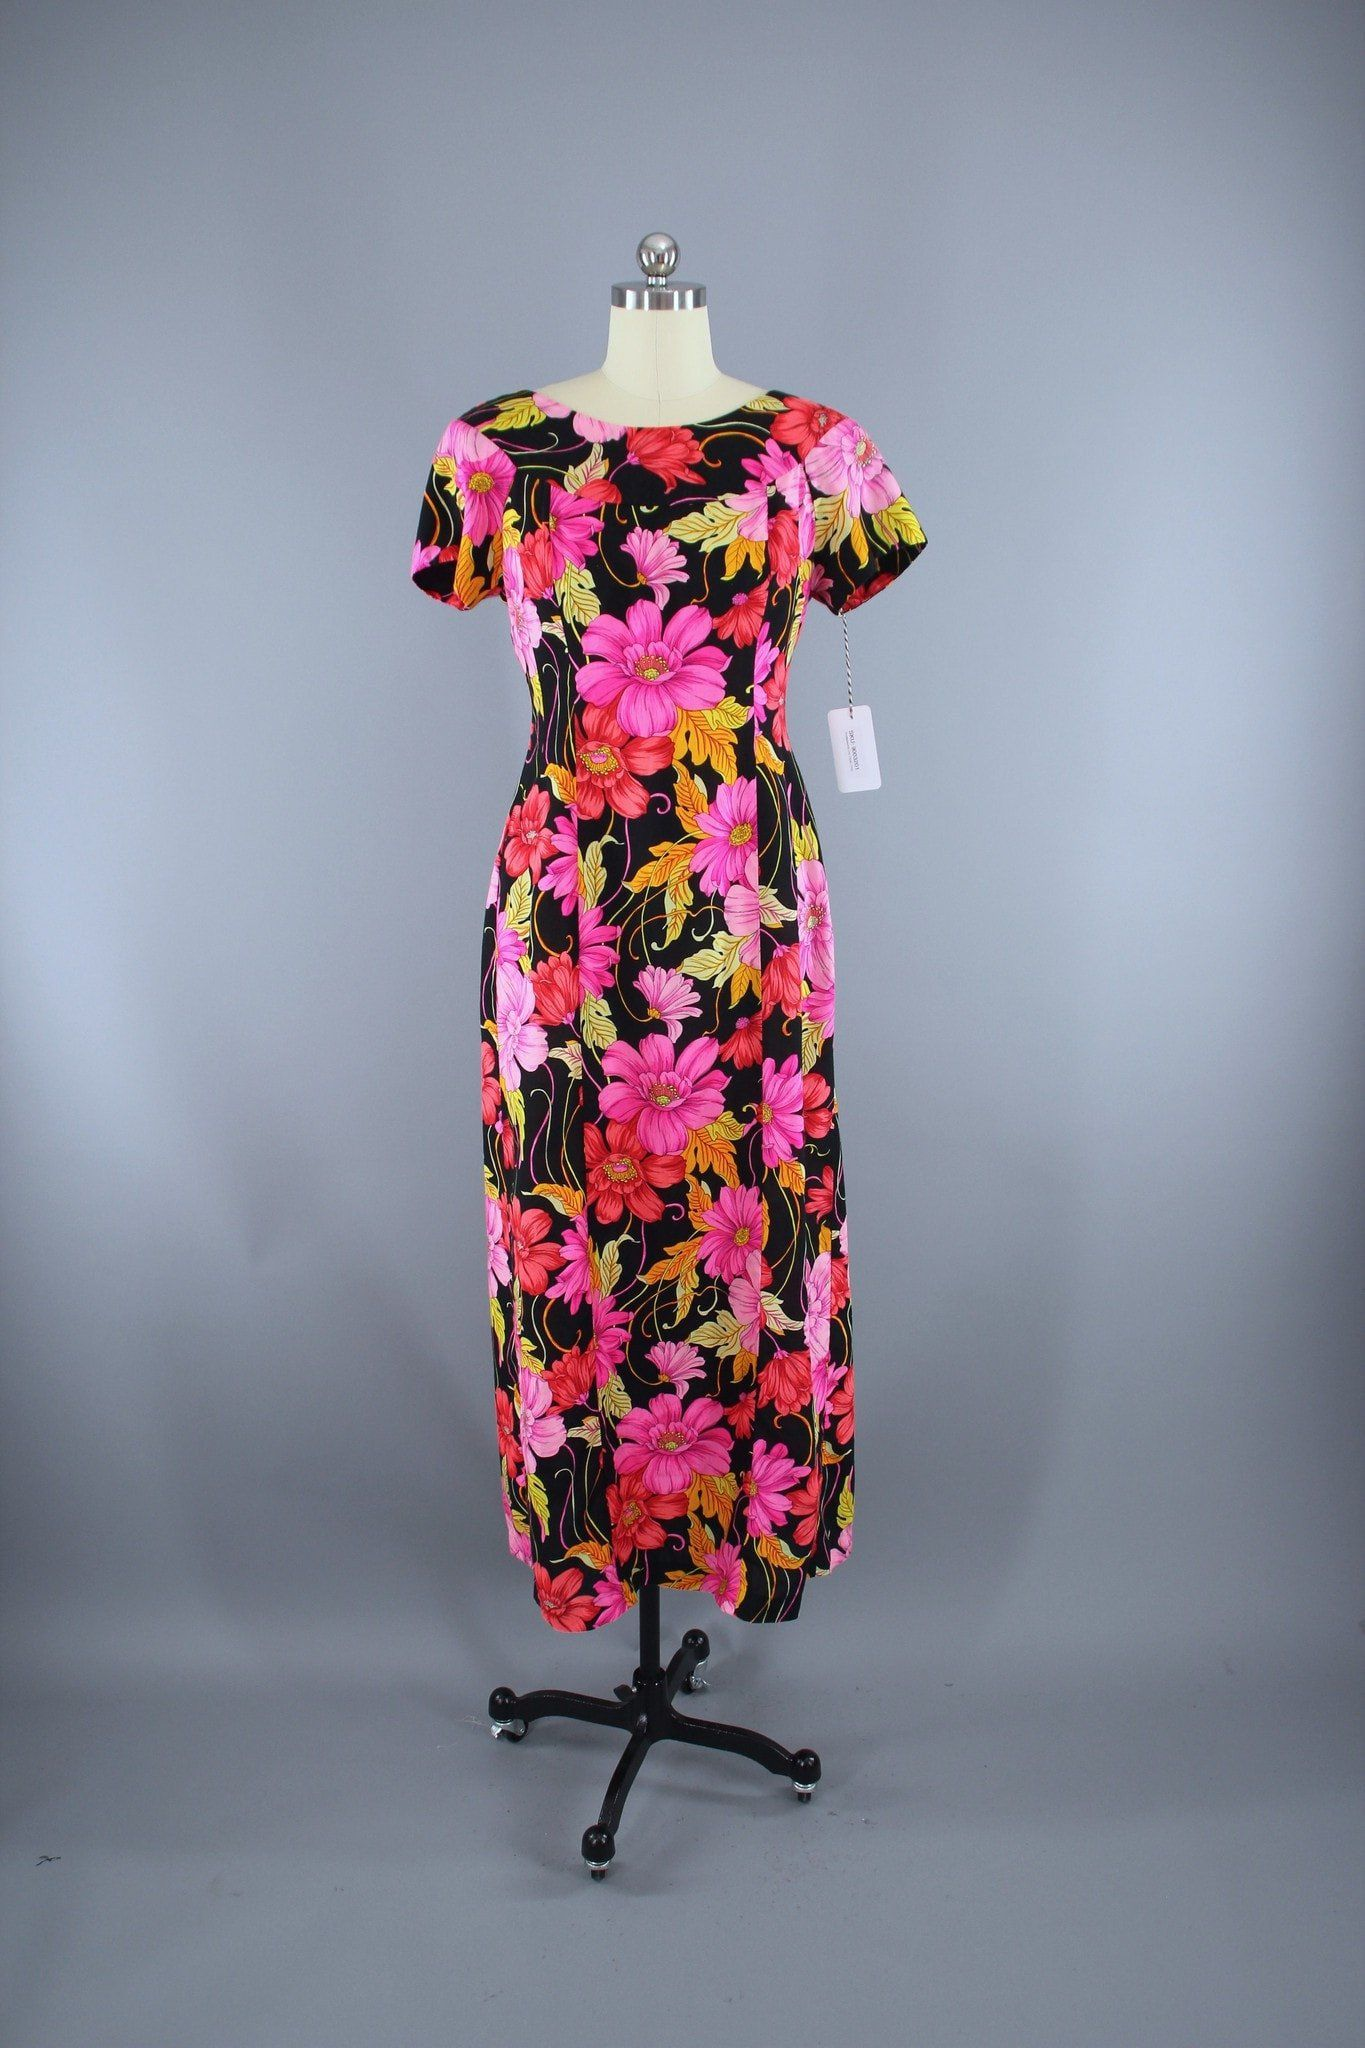 Vintage 1960s Hawaiian Maxi Dress / Black & Pink Floral Print thisbluebird.com #dress #dresses #vintagedress #vintage #vintagedresses #daydress #fashion #vintagefashion #outfit  #thisbluebird